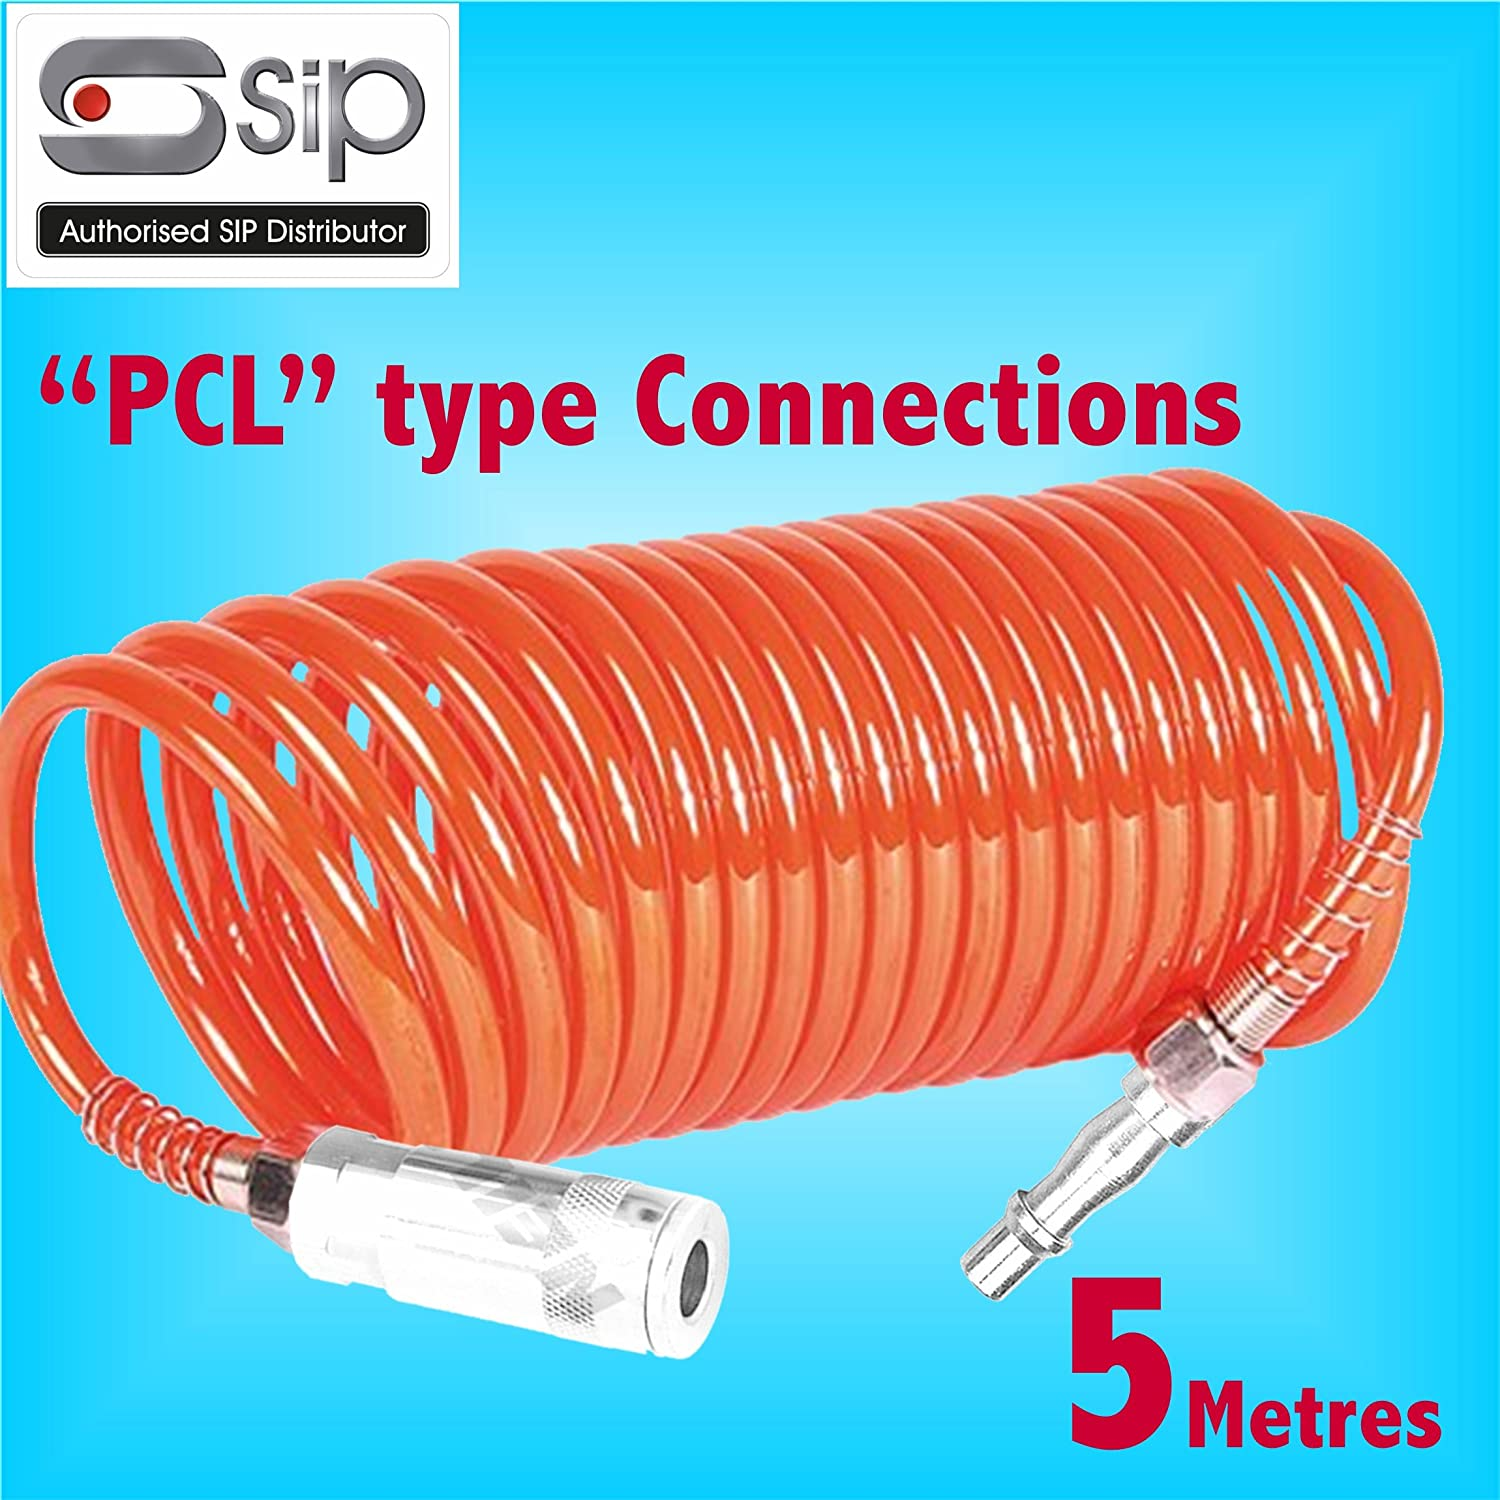 SIP 5 Metre Coiled Air Hose with'PCL' Type Quick Release Fittings Lightweight Nylon air line Compressor Tool SIP Industrial Products Ltd